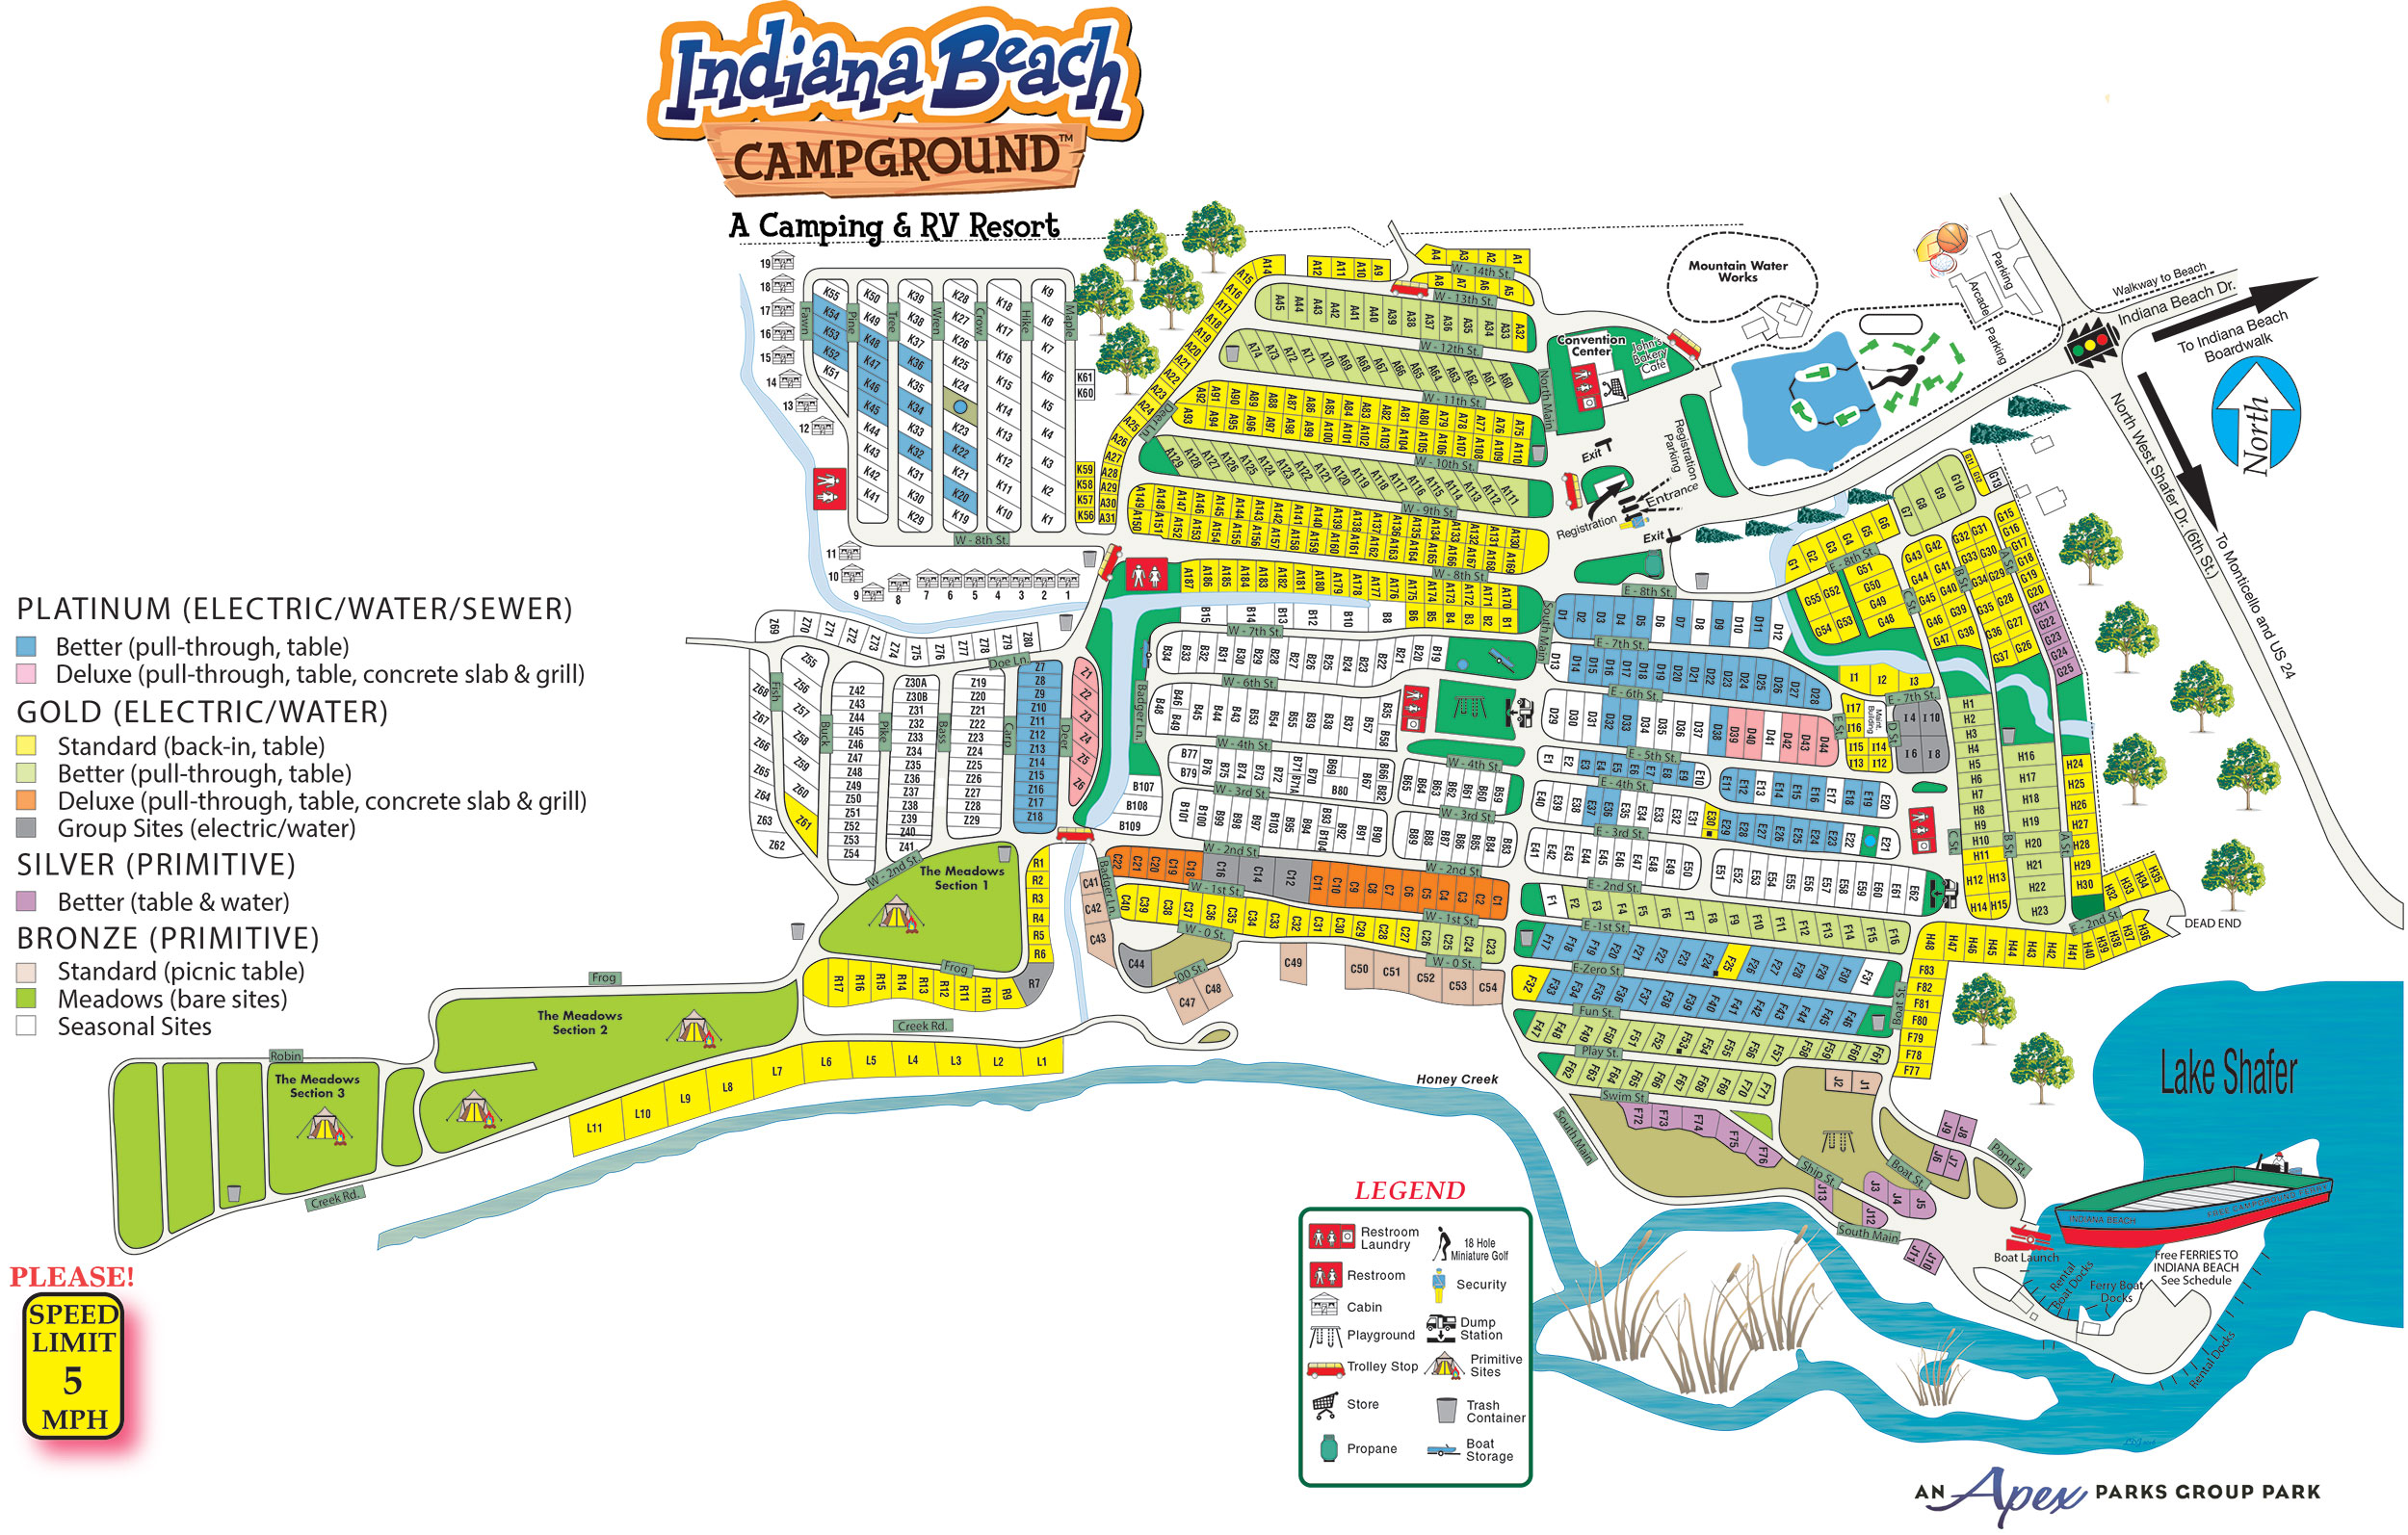 Indiana Beach Campground in Monticello, Indiana | Amenities